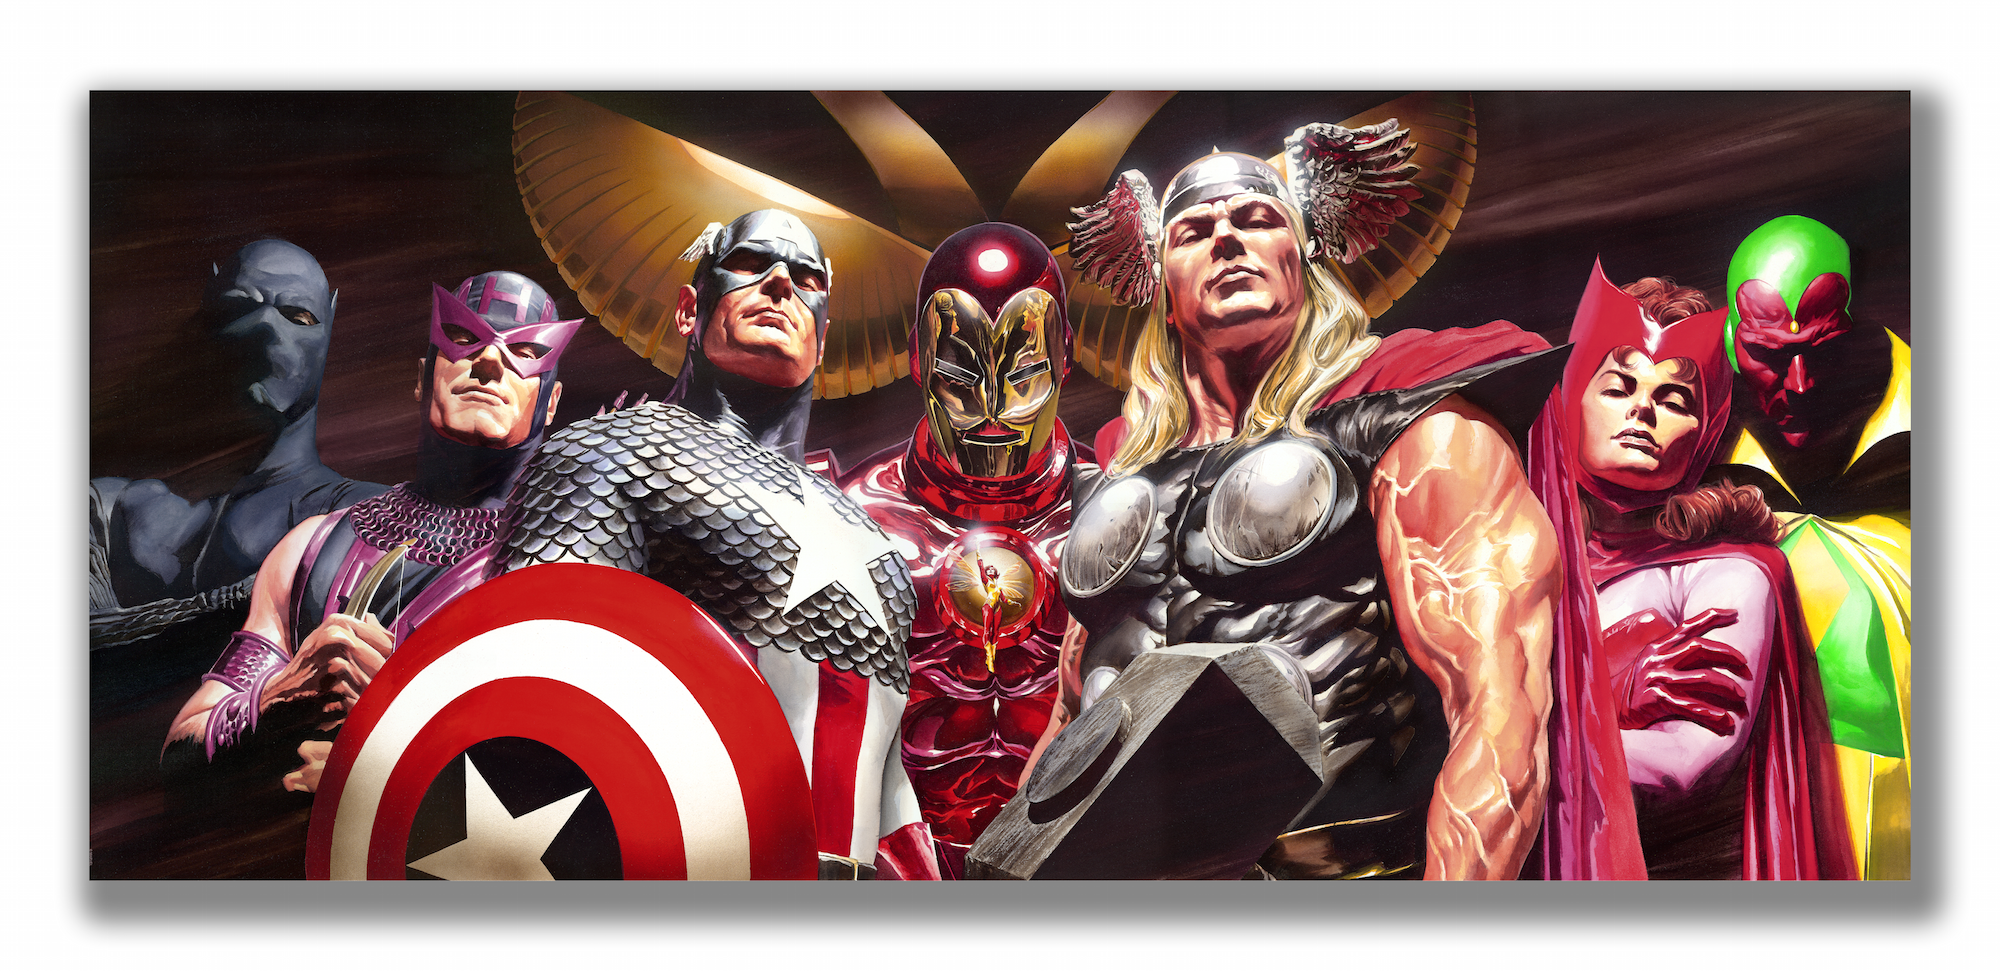 Avengers Assemble   Alex Ross  29 x 17 inches  Giclee on Paper  Edition of 250  *Signed by Alex Ross